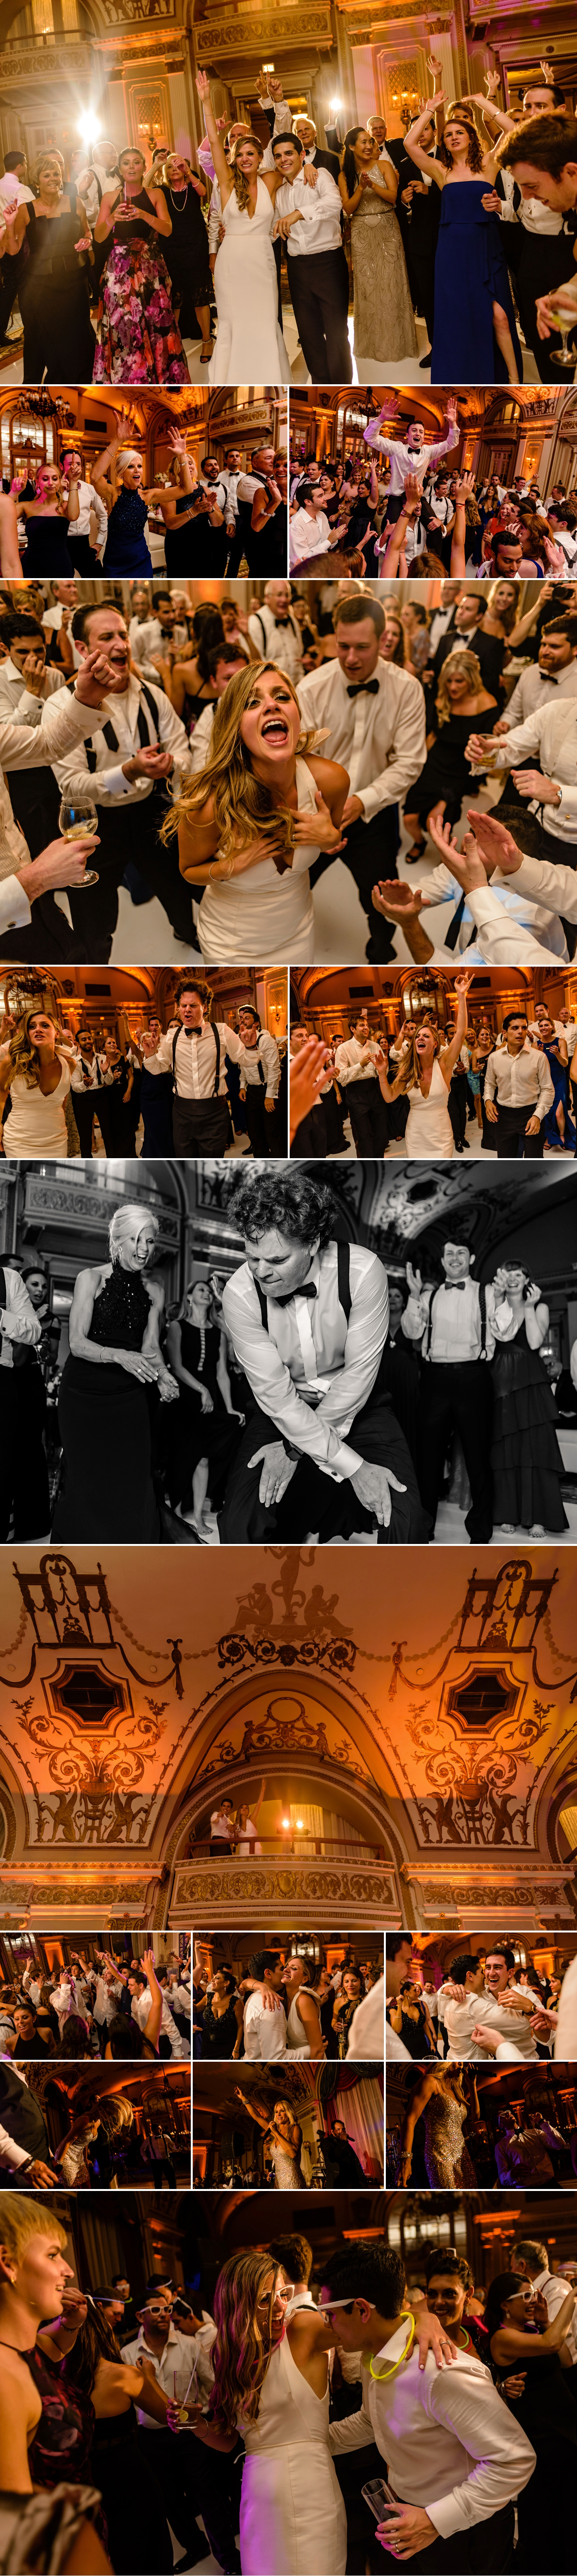 photos of candid bride and groom moments on the dance floor during a jewish wedding at the chateau laurier wedding in ottawa ontario